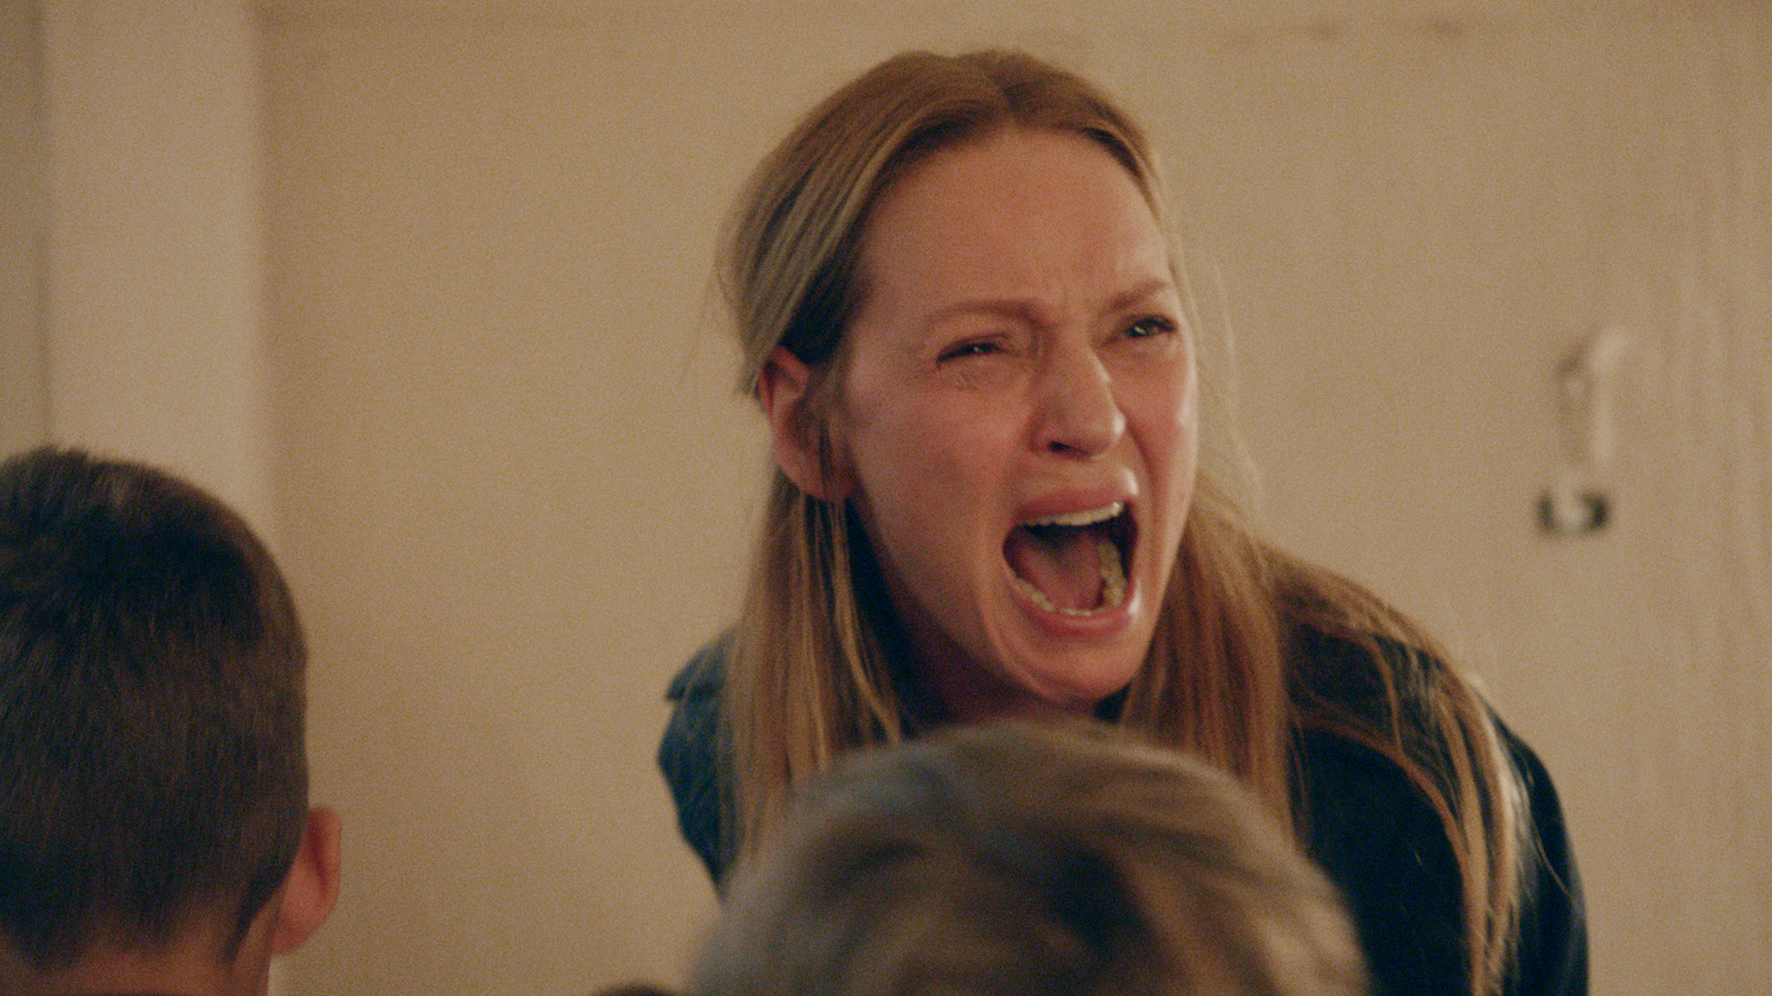 Uma Thurman in Nymphomaniac: Vol. I (2013)